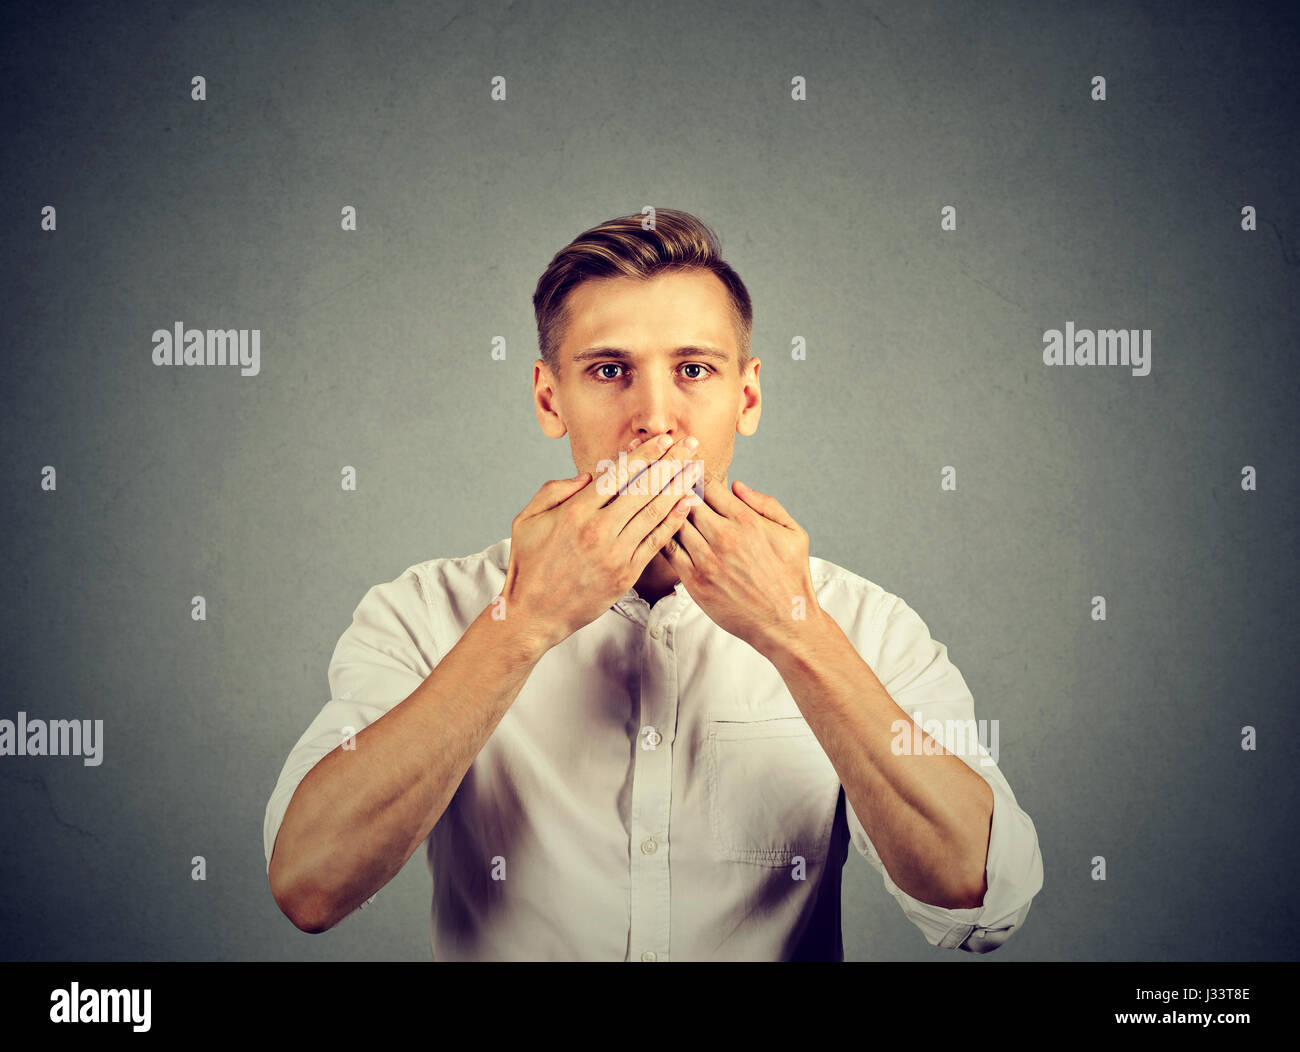 man with hands over his mouth, speechless isolated on gray wall background - Stock Image